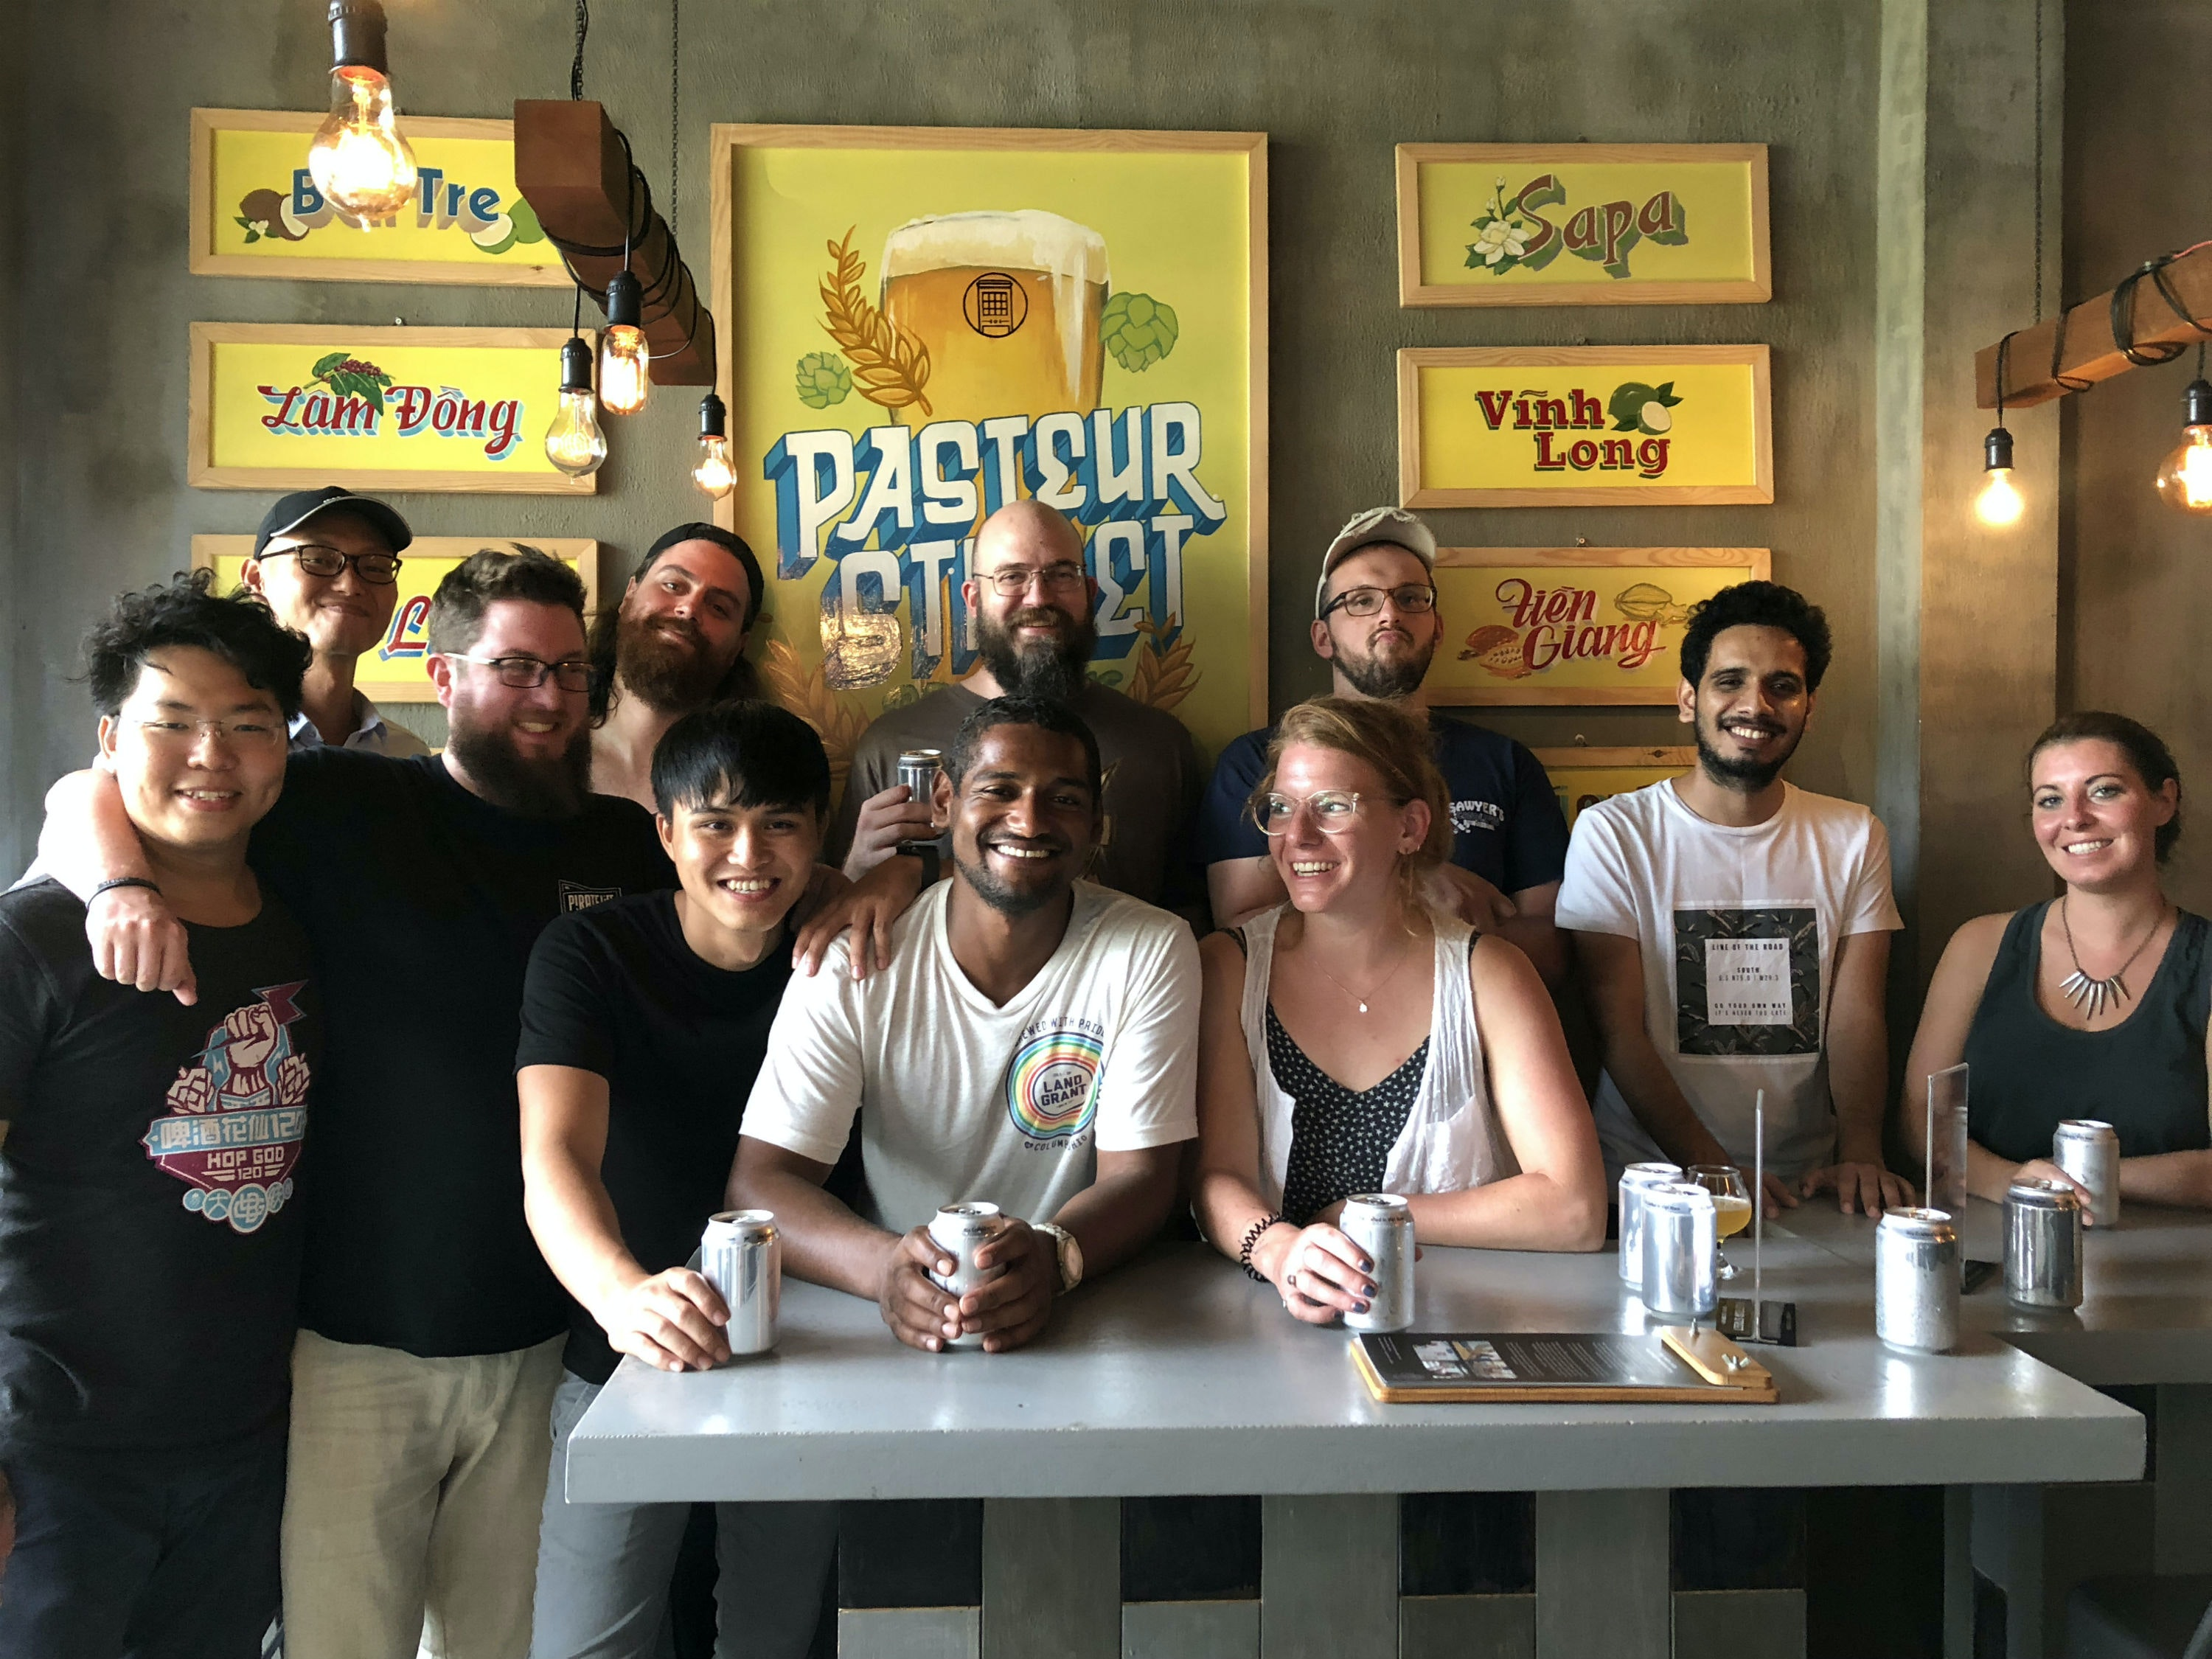 The team at Pasteur Street Brewing Company love discovering new flavors.